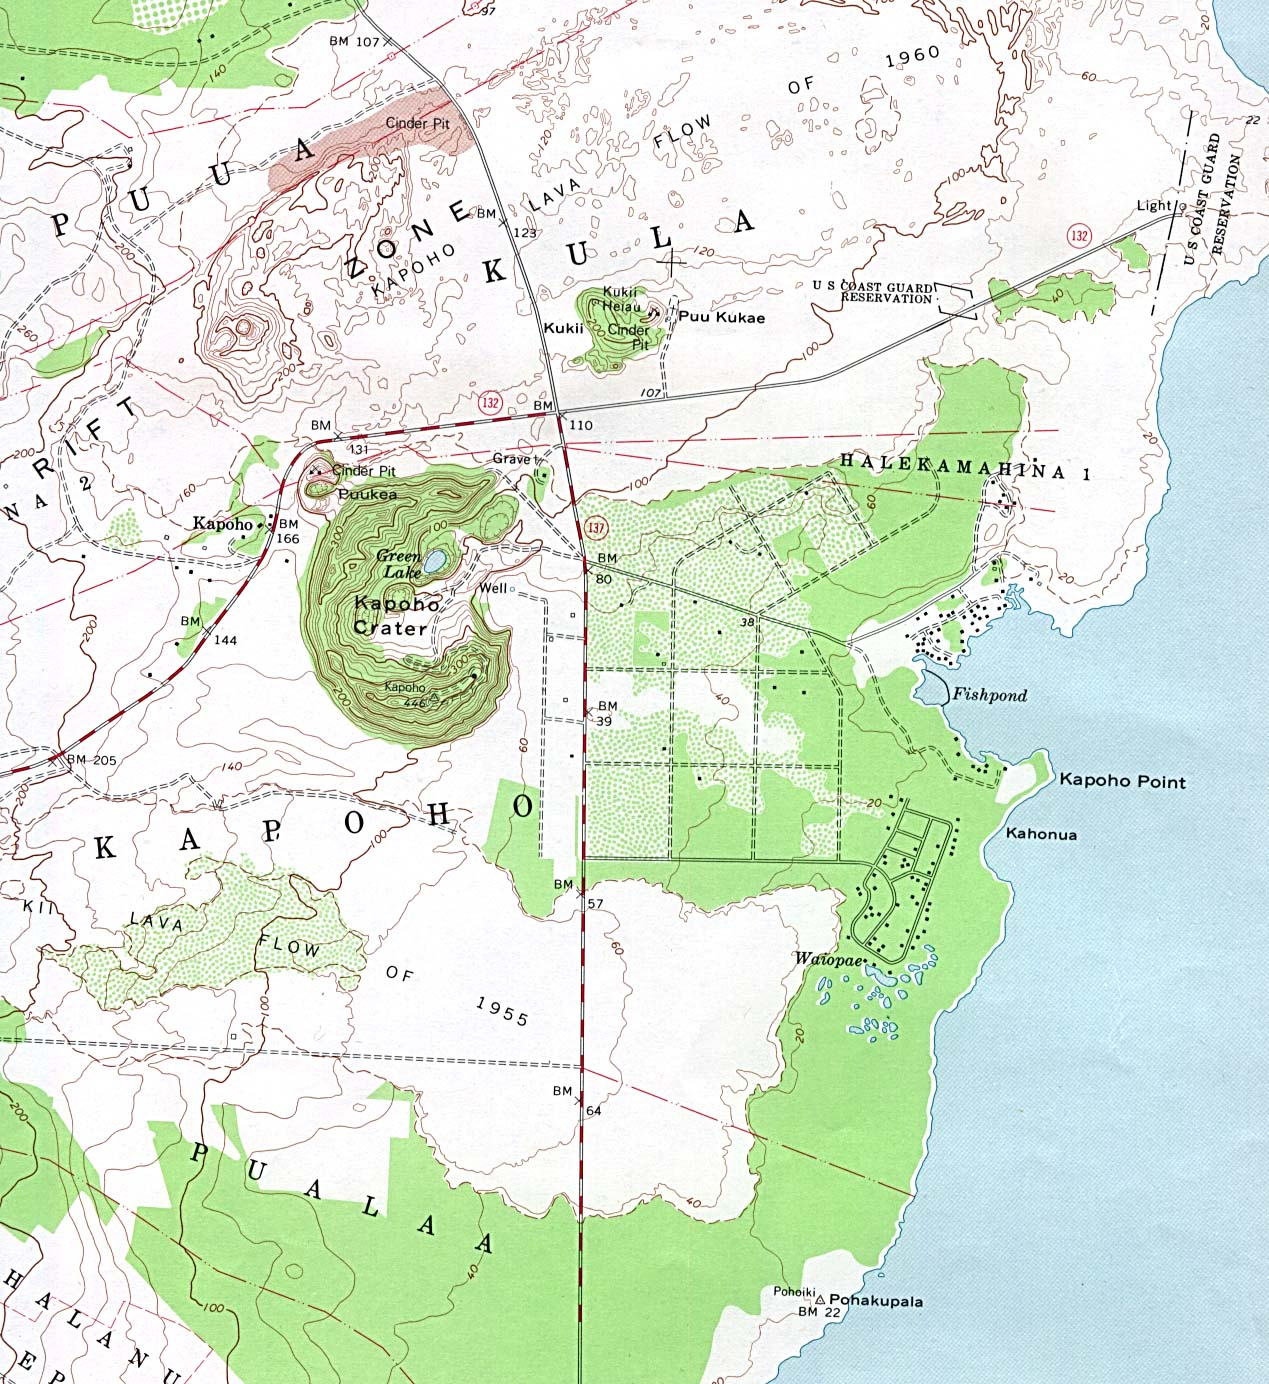 Maps of United States National Parks, Monuments and Historic Sites Kapoho Crater [Hawaii] Scale 1:24,000 U.S.G.S. [Topographic Map] 1981 (408K)